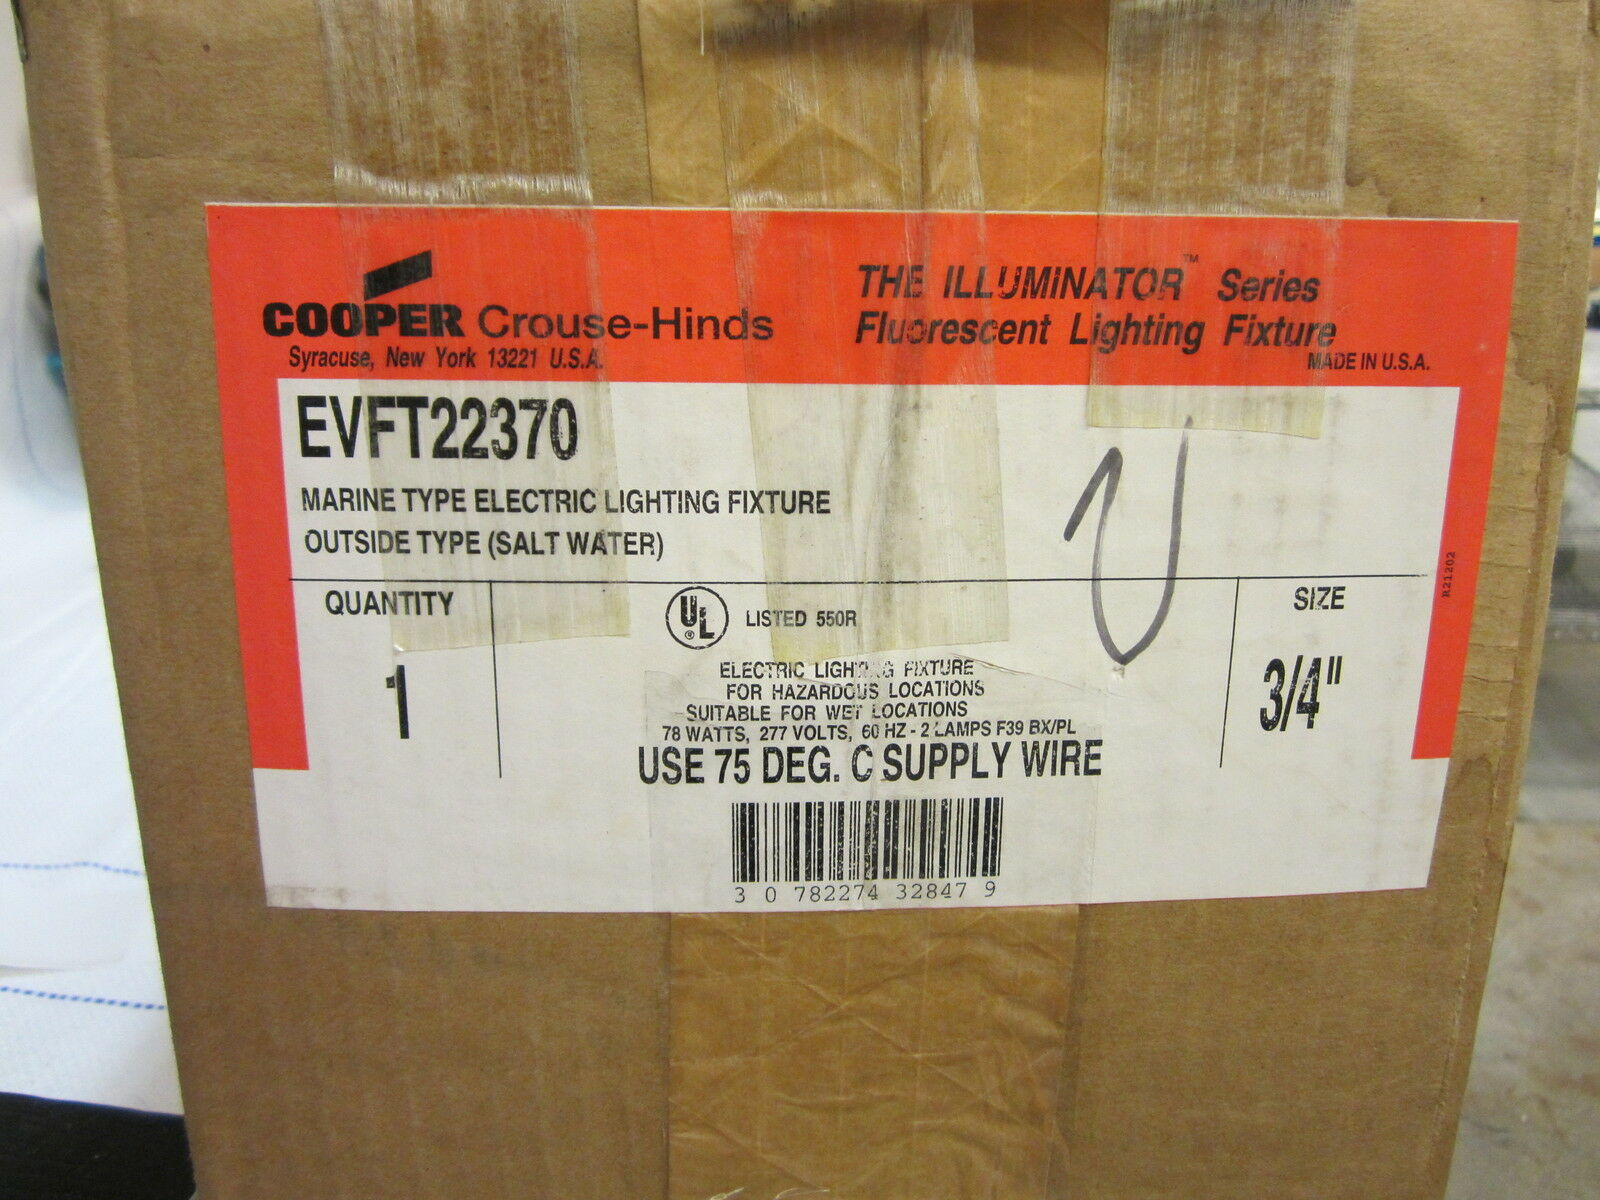 Crouse Hinds Evft22370 Illuminator 2 Bulb Fixture 3 4 Ebay Wiring 277 Volt Fluorescent Light Fixtures Get Free Image About Norton Secured Powered By Verisign